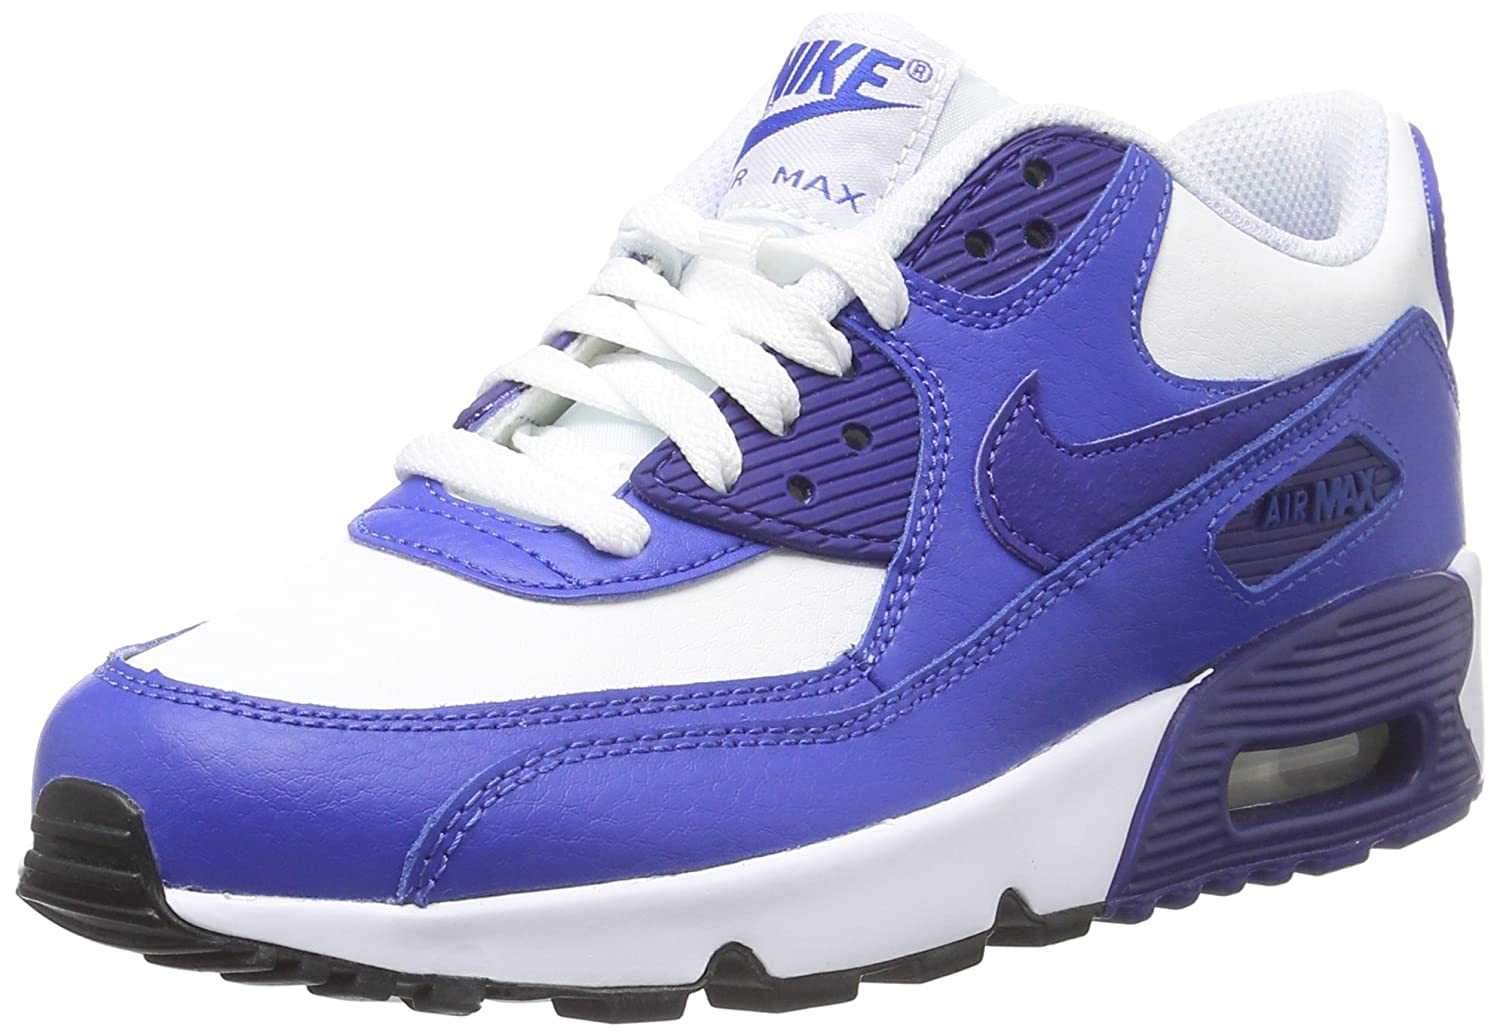 NIKE Kids Air Max 90 LTR (GS) Running Shoe B01HVOPRRS 6.5 M US Big Kid|WHITE/DEEP ROYAL BLUE-GAME ROYAL-BLACK